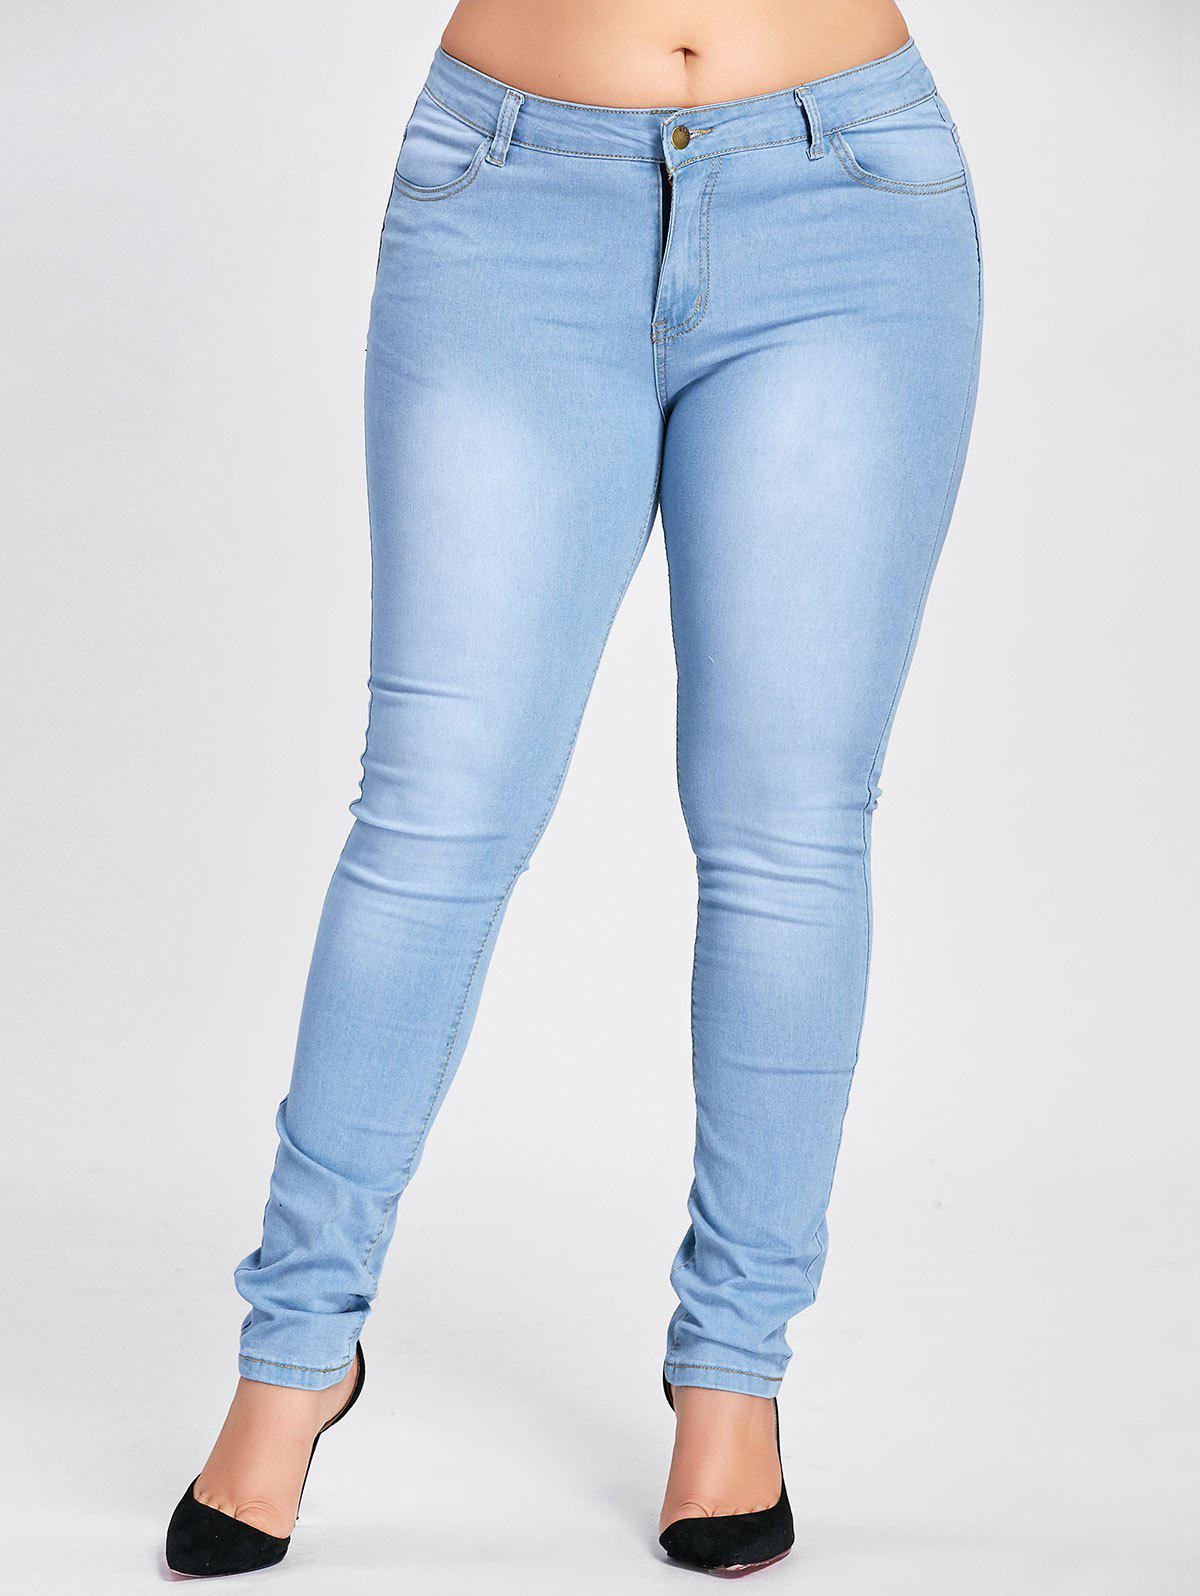 Plus Size Stretch Light Wash JeansWOMEN<br><br>Size: 3XL; Color: WINDSOR BLUE; Style: Fashion; Length: Normal; Material: Jeans; Fabric Type: Denim; Fit Type: Skinny; Waist Type: High; Closure Type: Zipper Fly; Pattern Type: Solid; Embellishment: Pockets; Pant Style: Pencil Pants; Weight: 0.4100kg; Package Contents: 1 x Jeans;